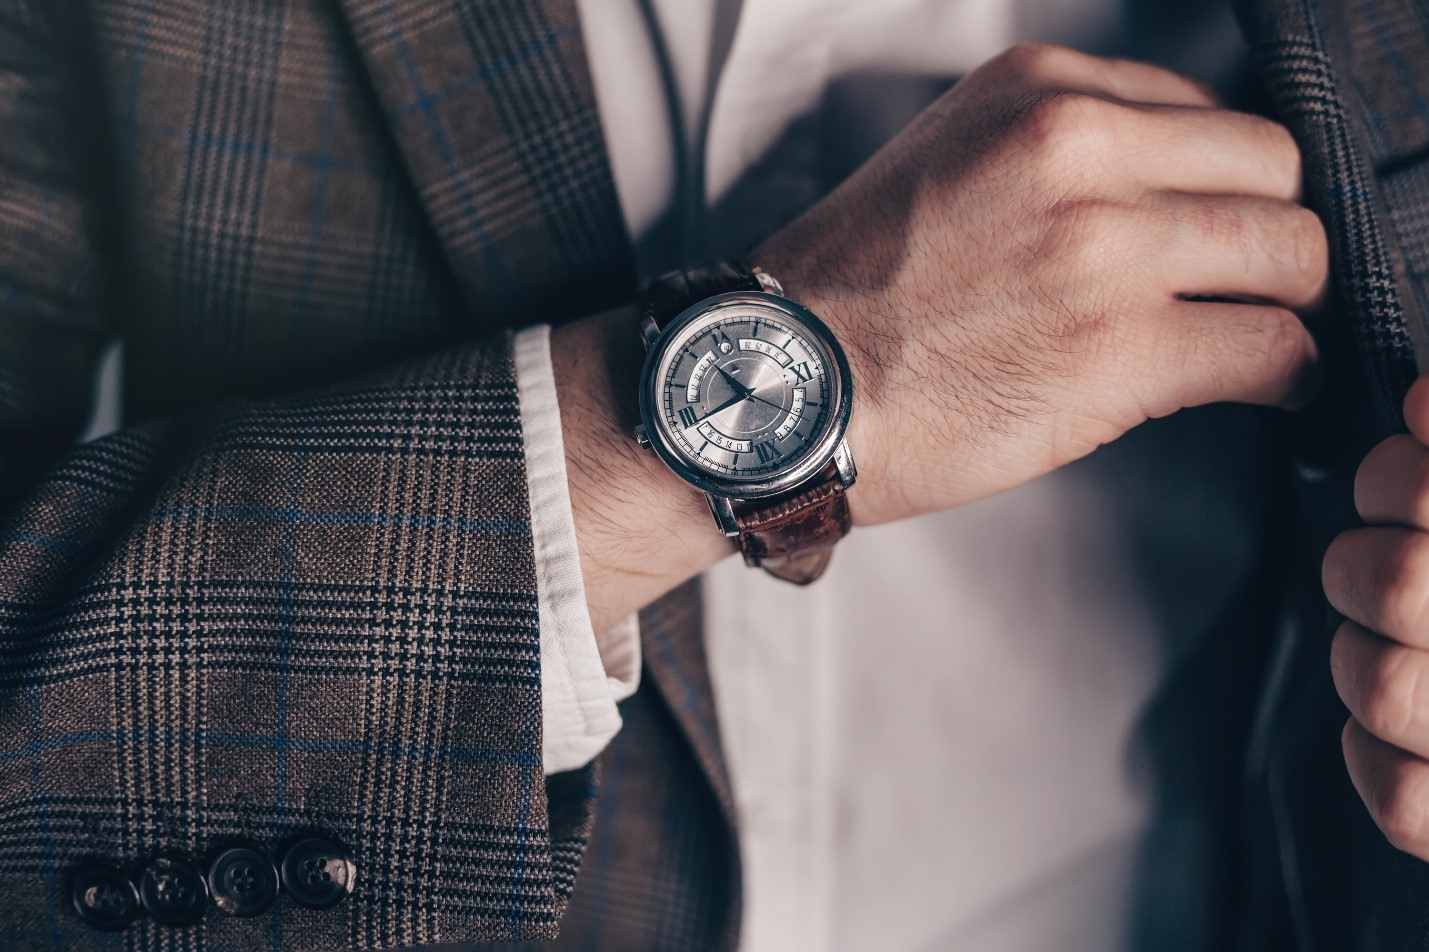 Best Male Watch Styles of 2021: Your ULTIMATE Guide to Choosing the Best Watch